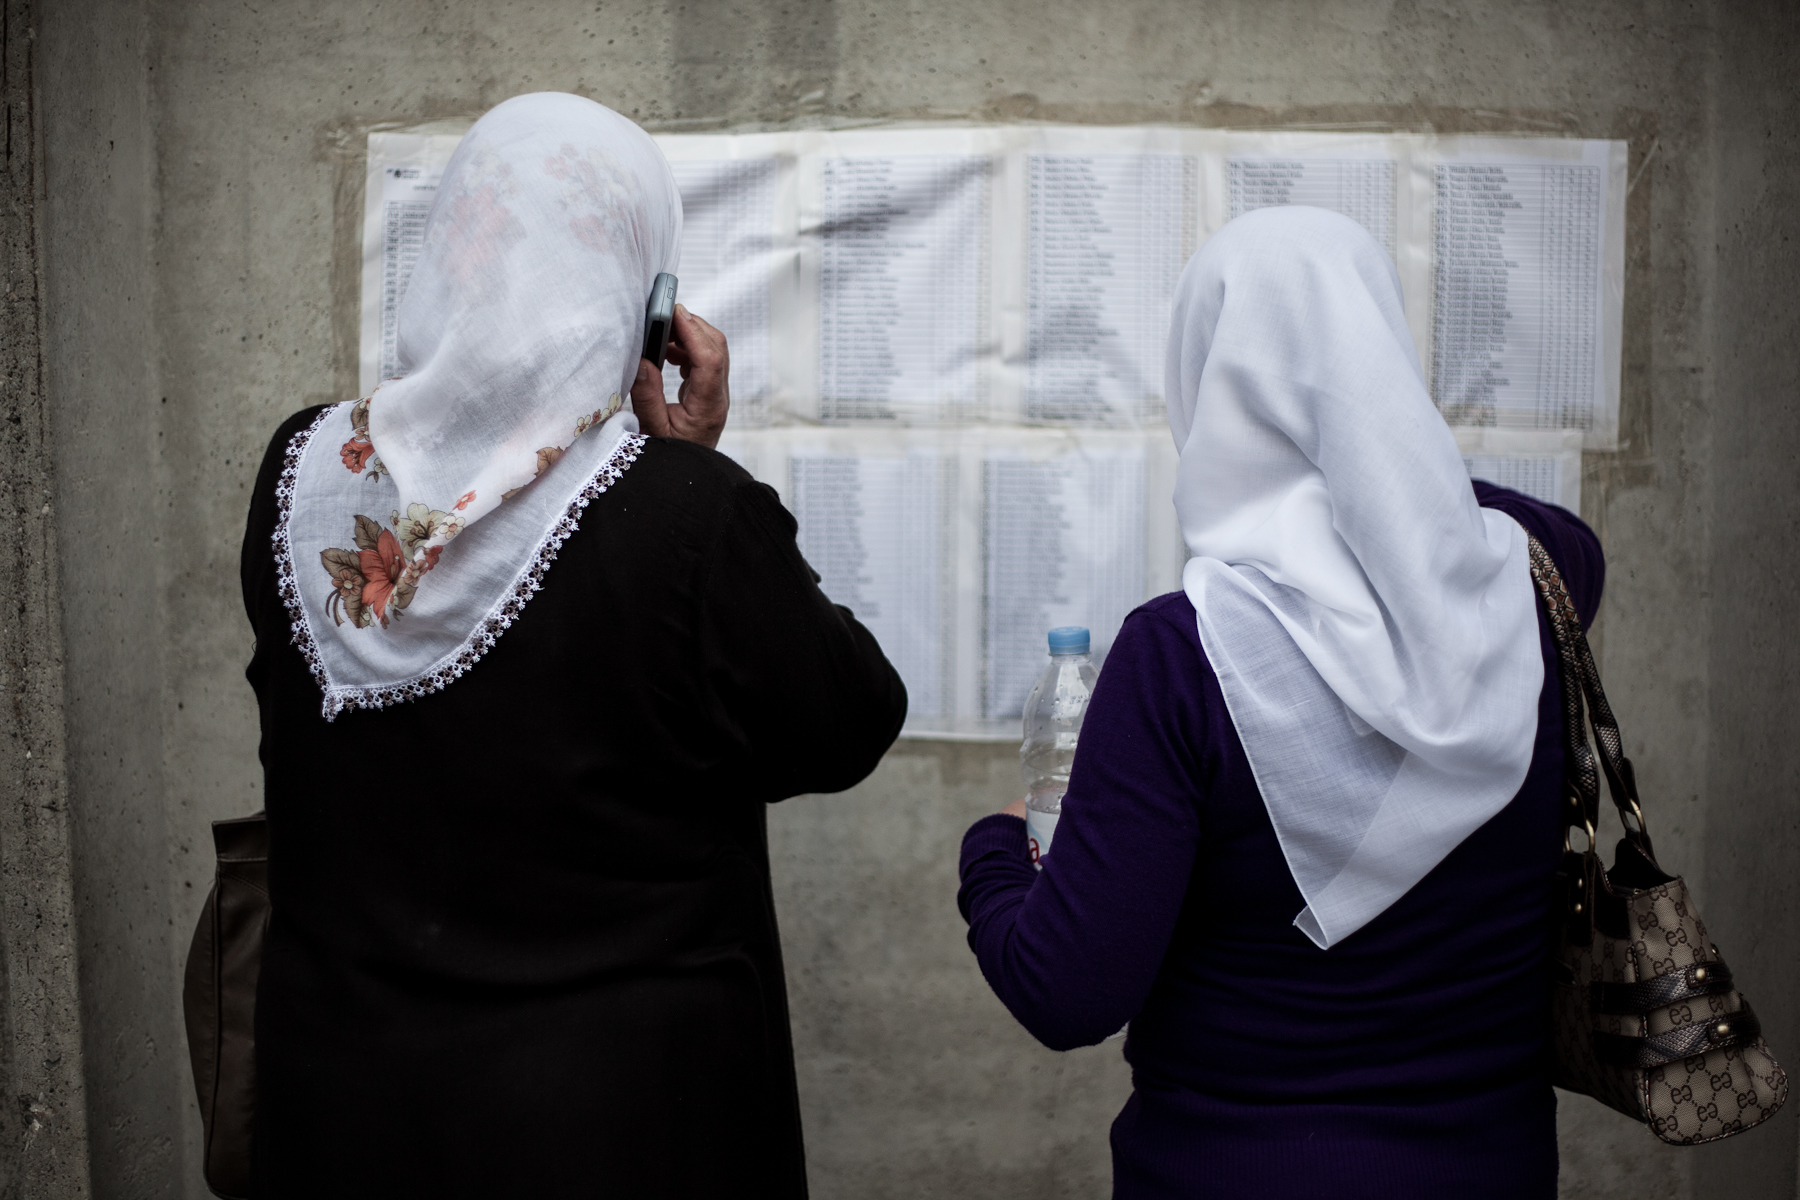 Bosnian women check the list of names of identified bodies in front of the Potocari memorial center, Srebrenica, July 10, 2010.